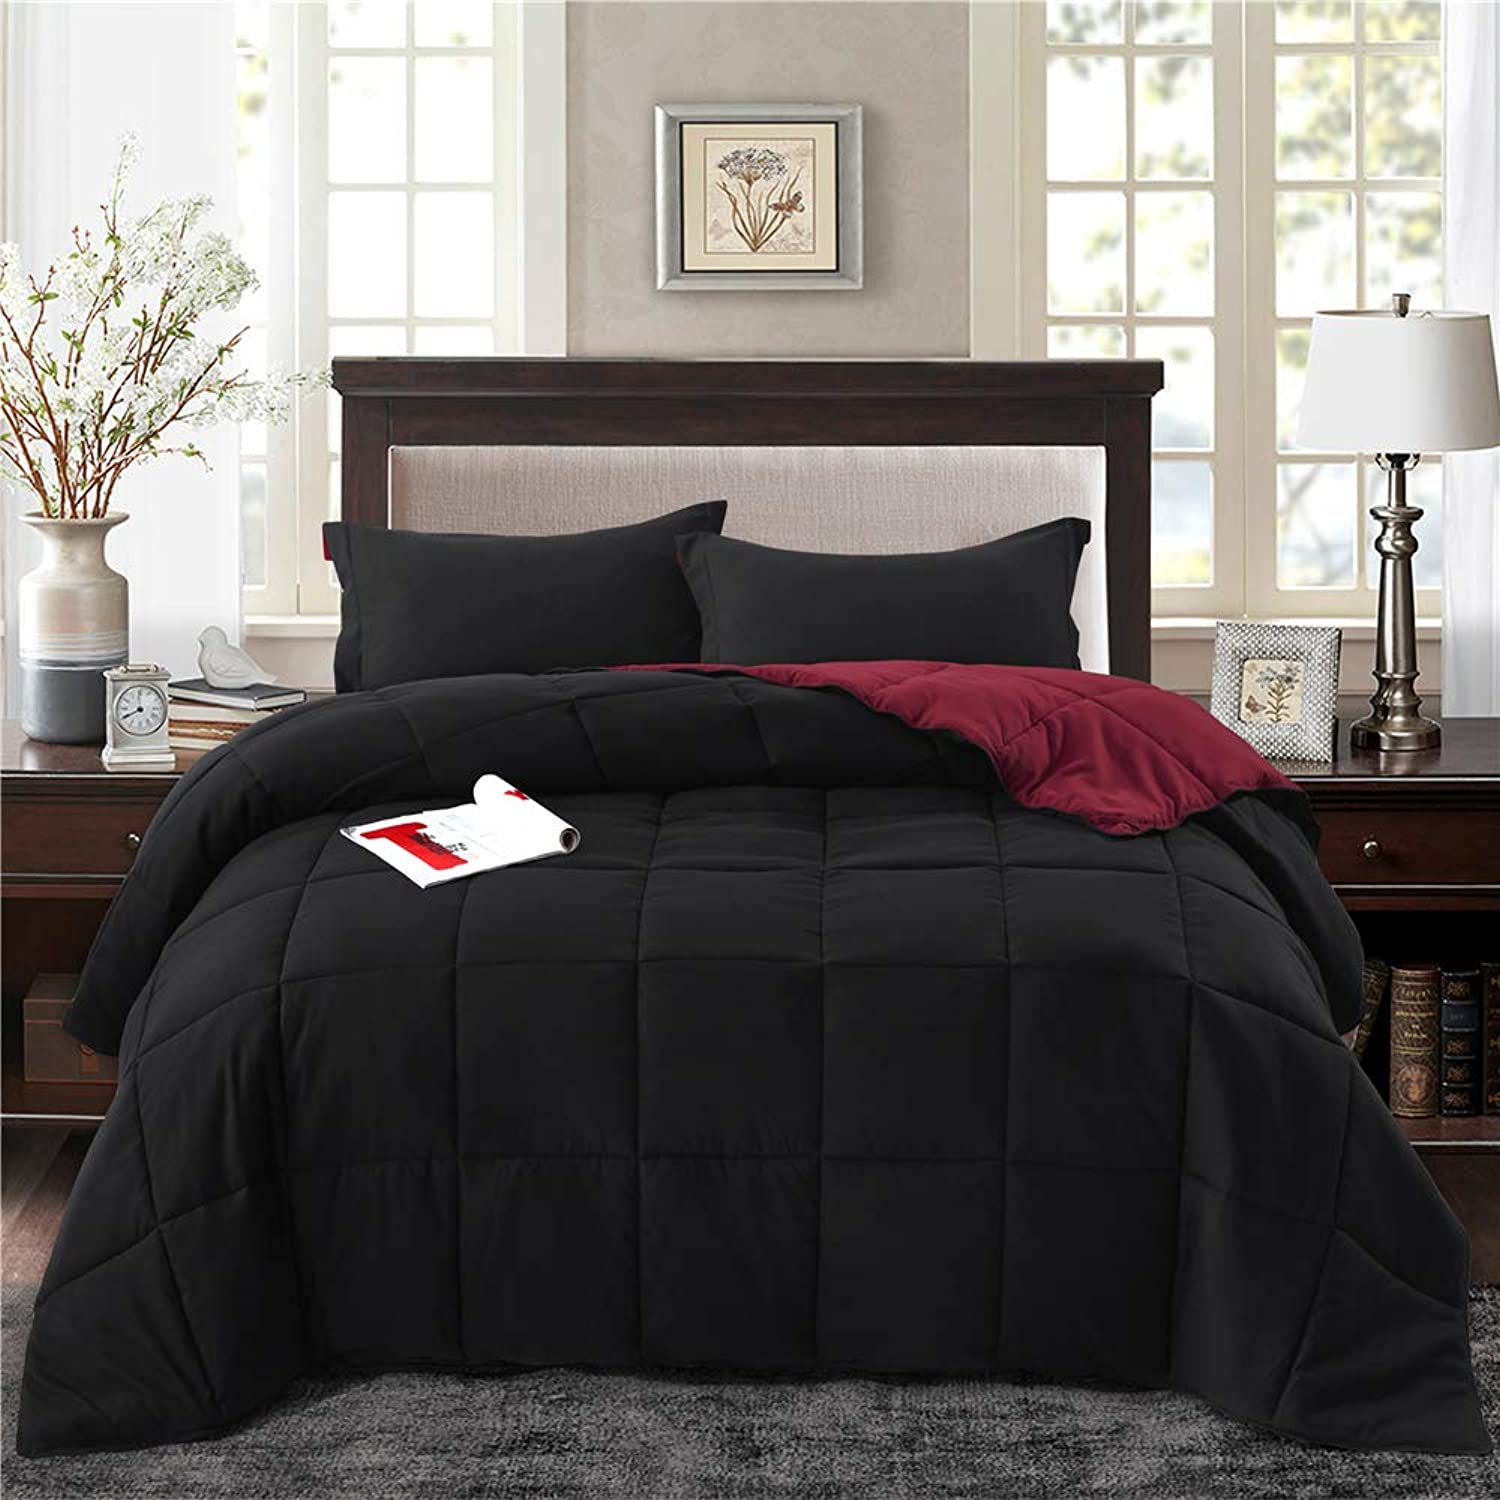 HIG 3pc Down Alternative Comforter Set - All Season Reversible Comforter with Two Shams - Quilted Duvet Insert with Corner Tabs -Box Stitched –Hypoallergenic, Soft, Fluffy (King CK, Black Burgundy)